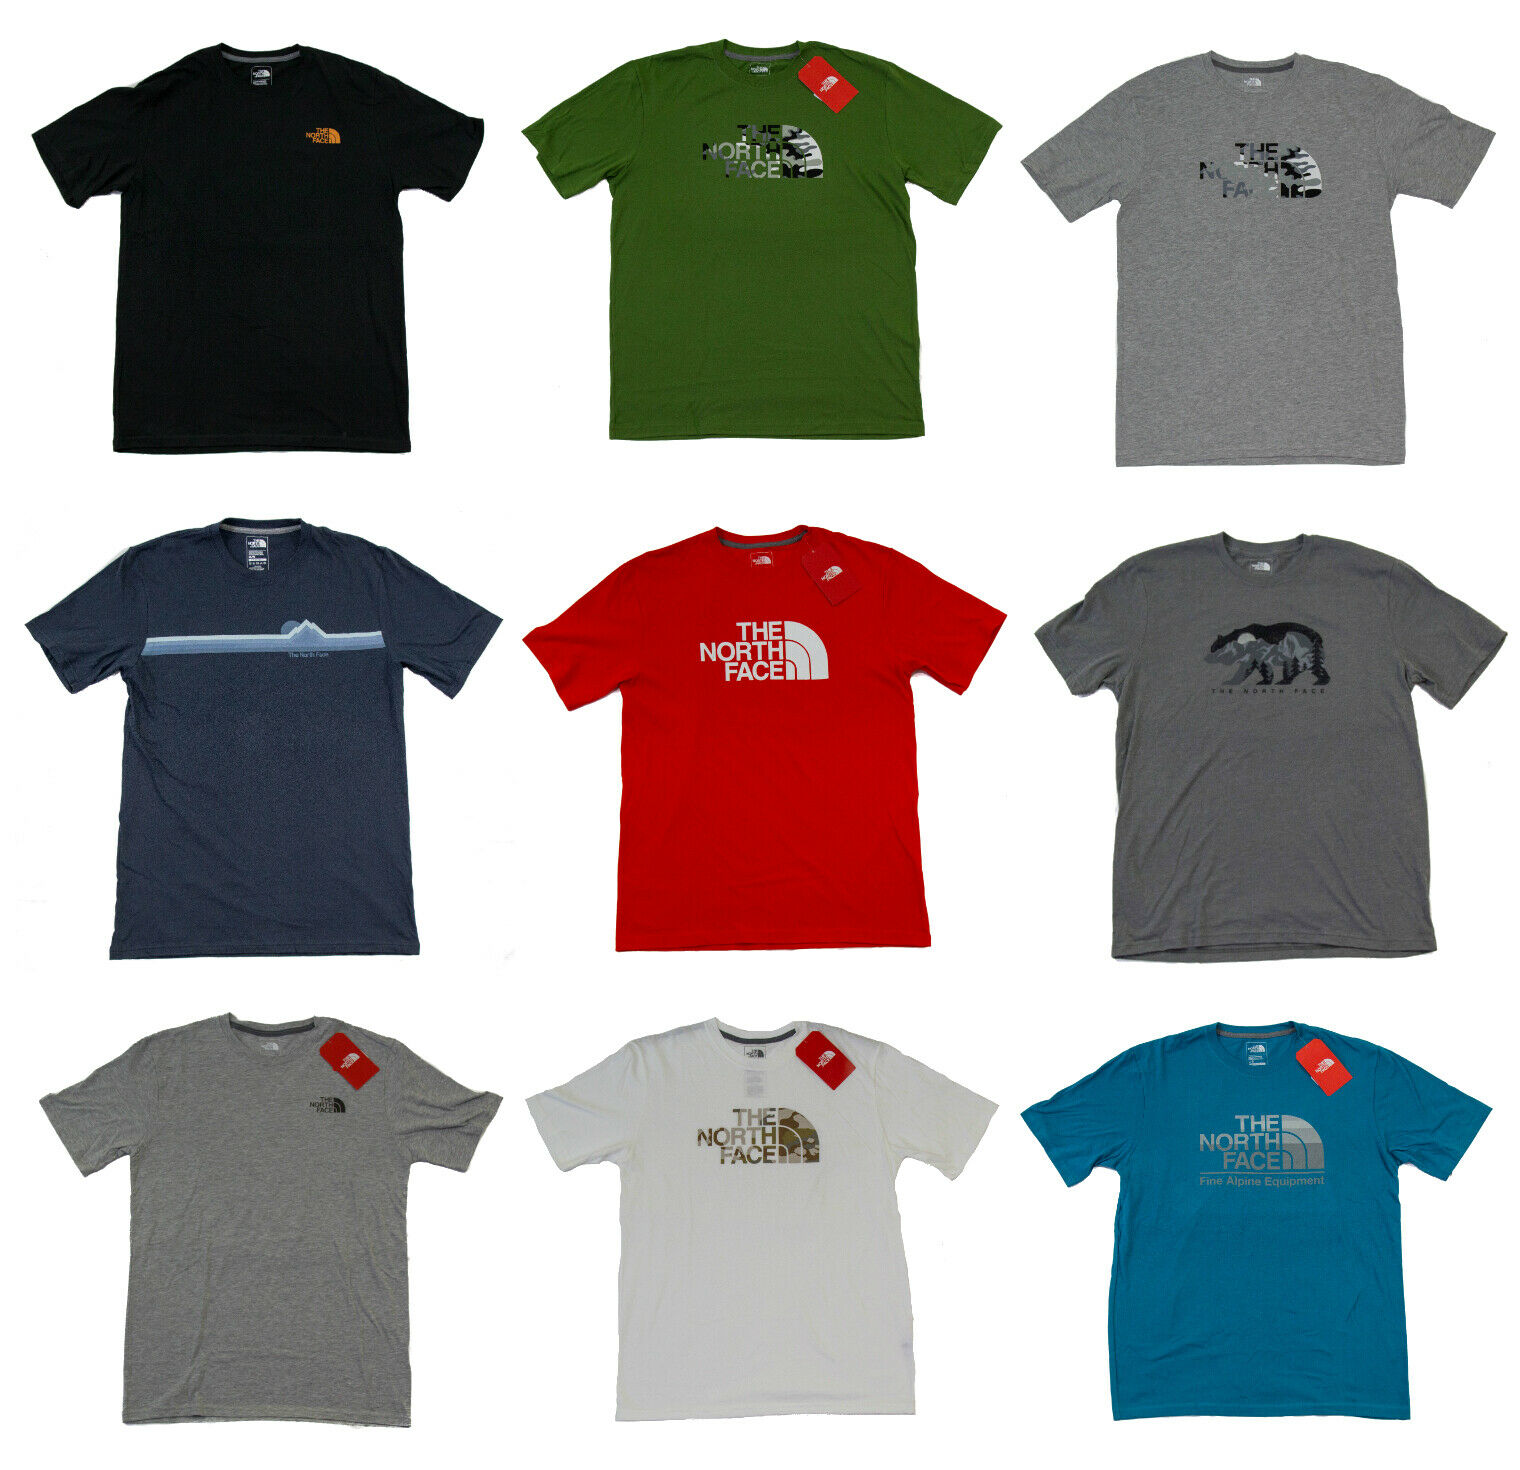 The North Face Men's Tri-Blend T-Shirt - Standard Fit - Size